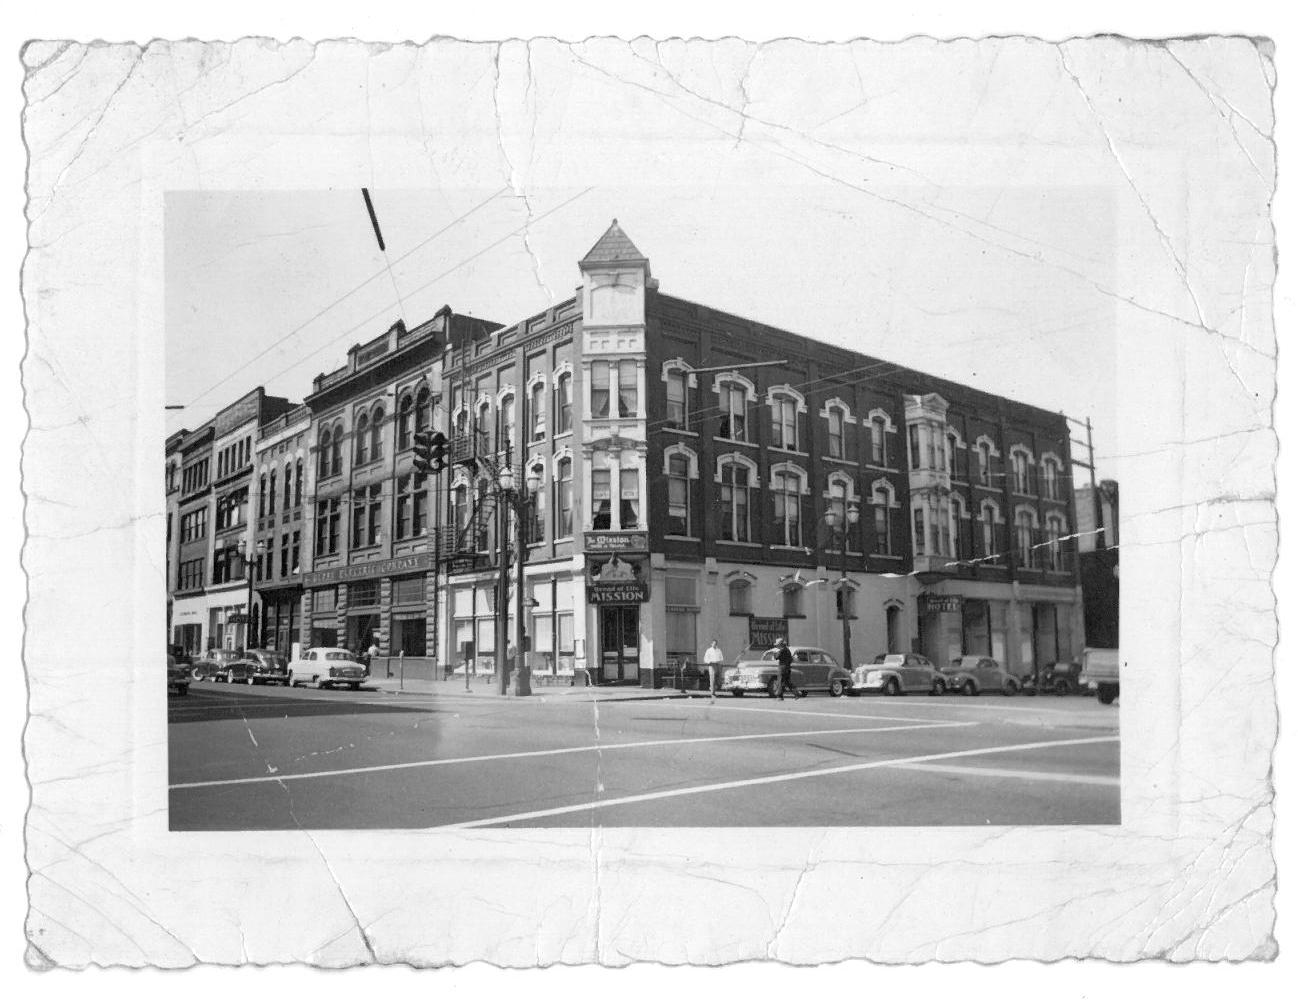 Bread of Life building in the 1940's